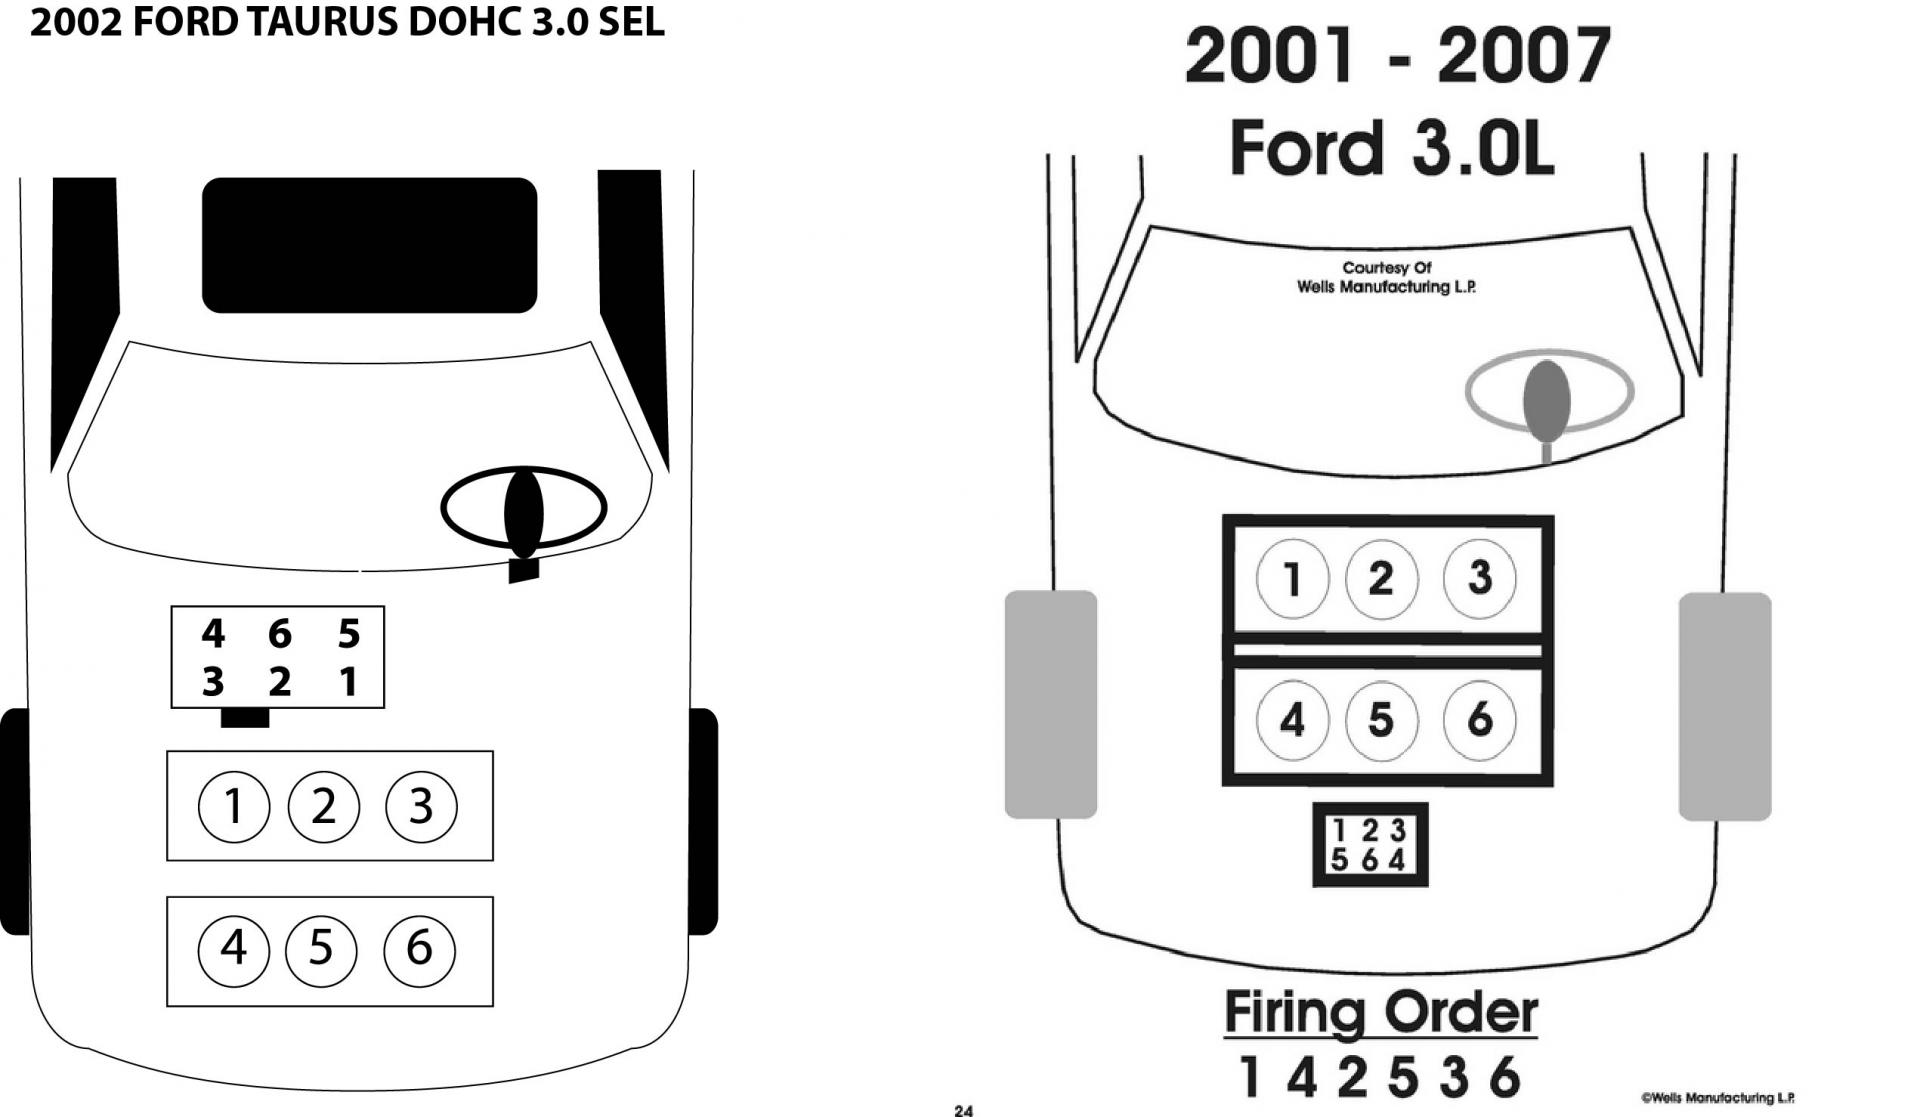 2002 taurus engine light misfire 302 303 page 4 taurus car 2002 Ford Taurus Spark Plug Wire Diagram click image for larger version name taurus dohc 2002 sel firing 2002 ford taurus spark plug wire diagram